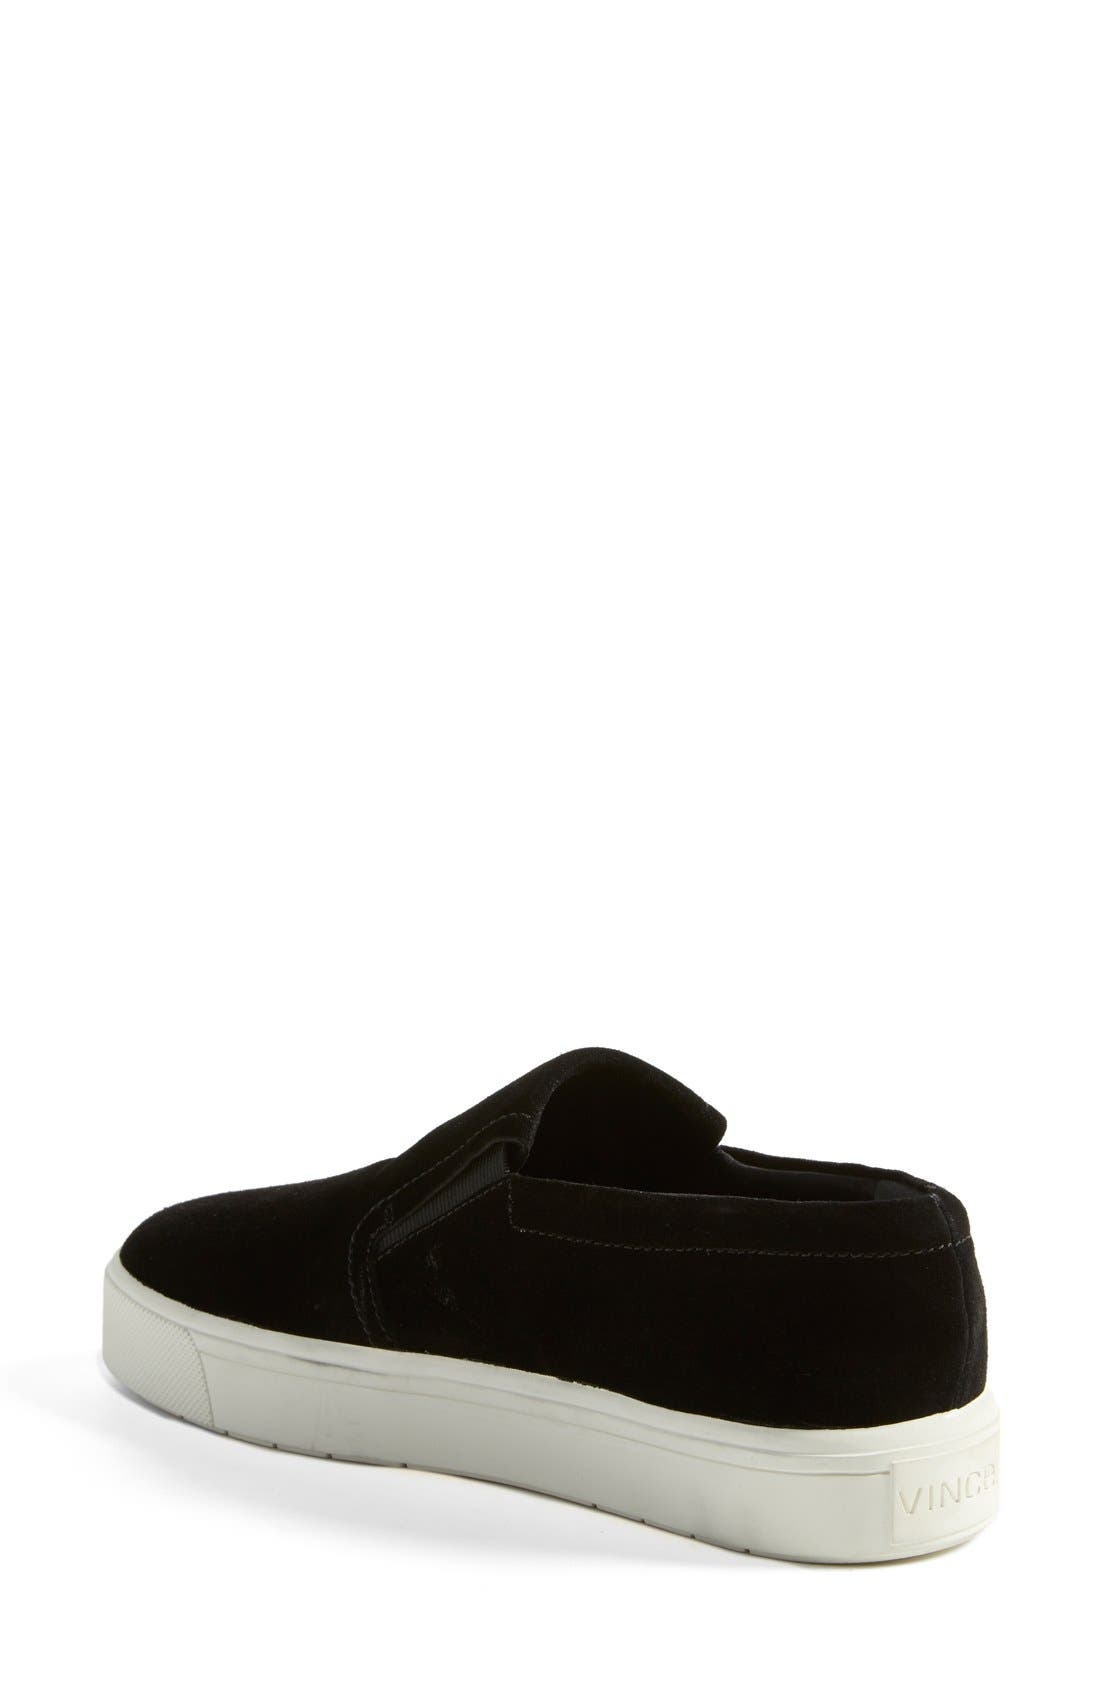 Alternate Image 2  - Vince 'Bowen' Slip-On (Women)